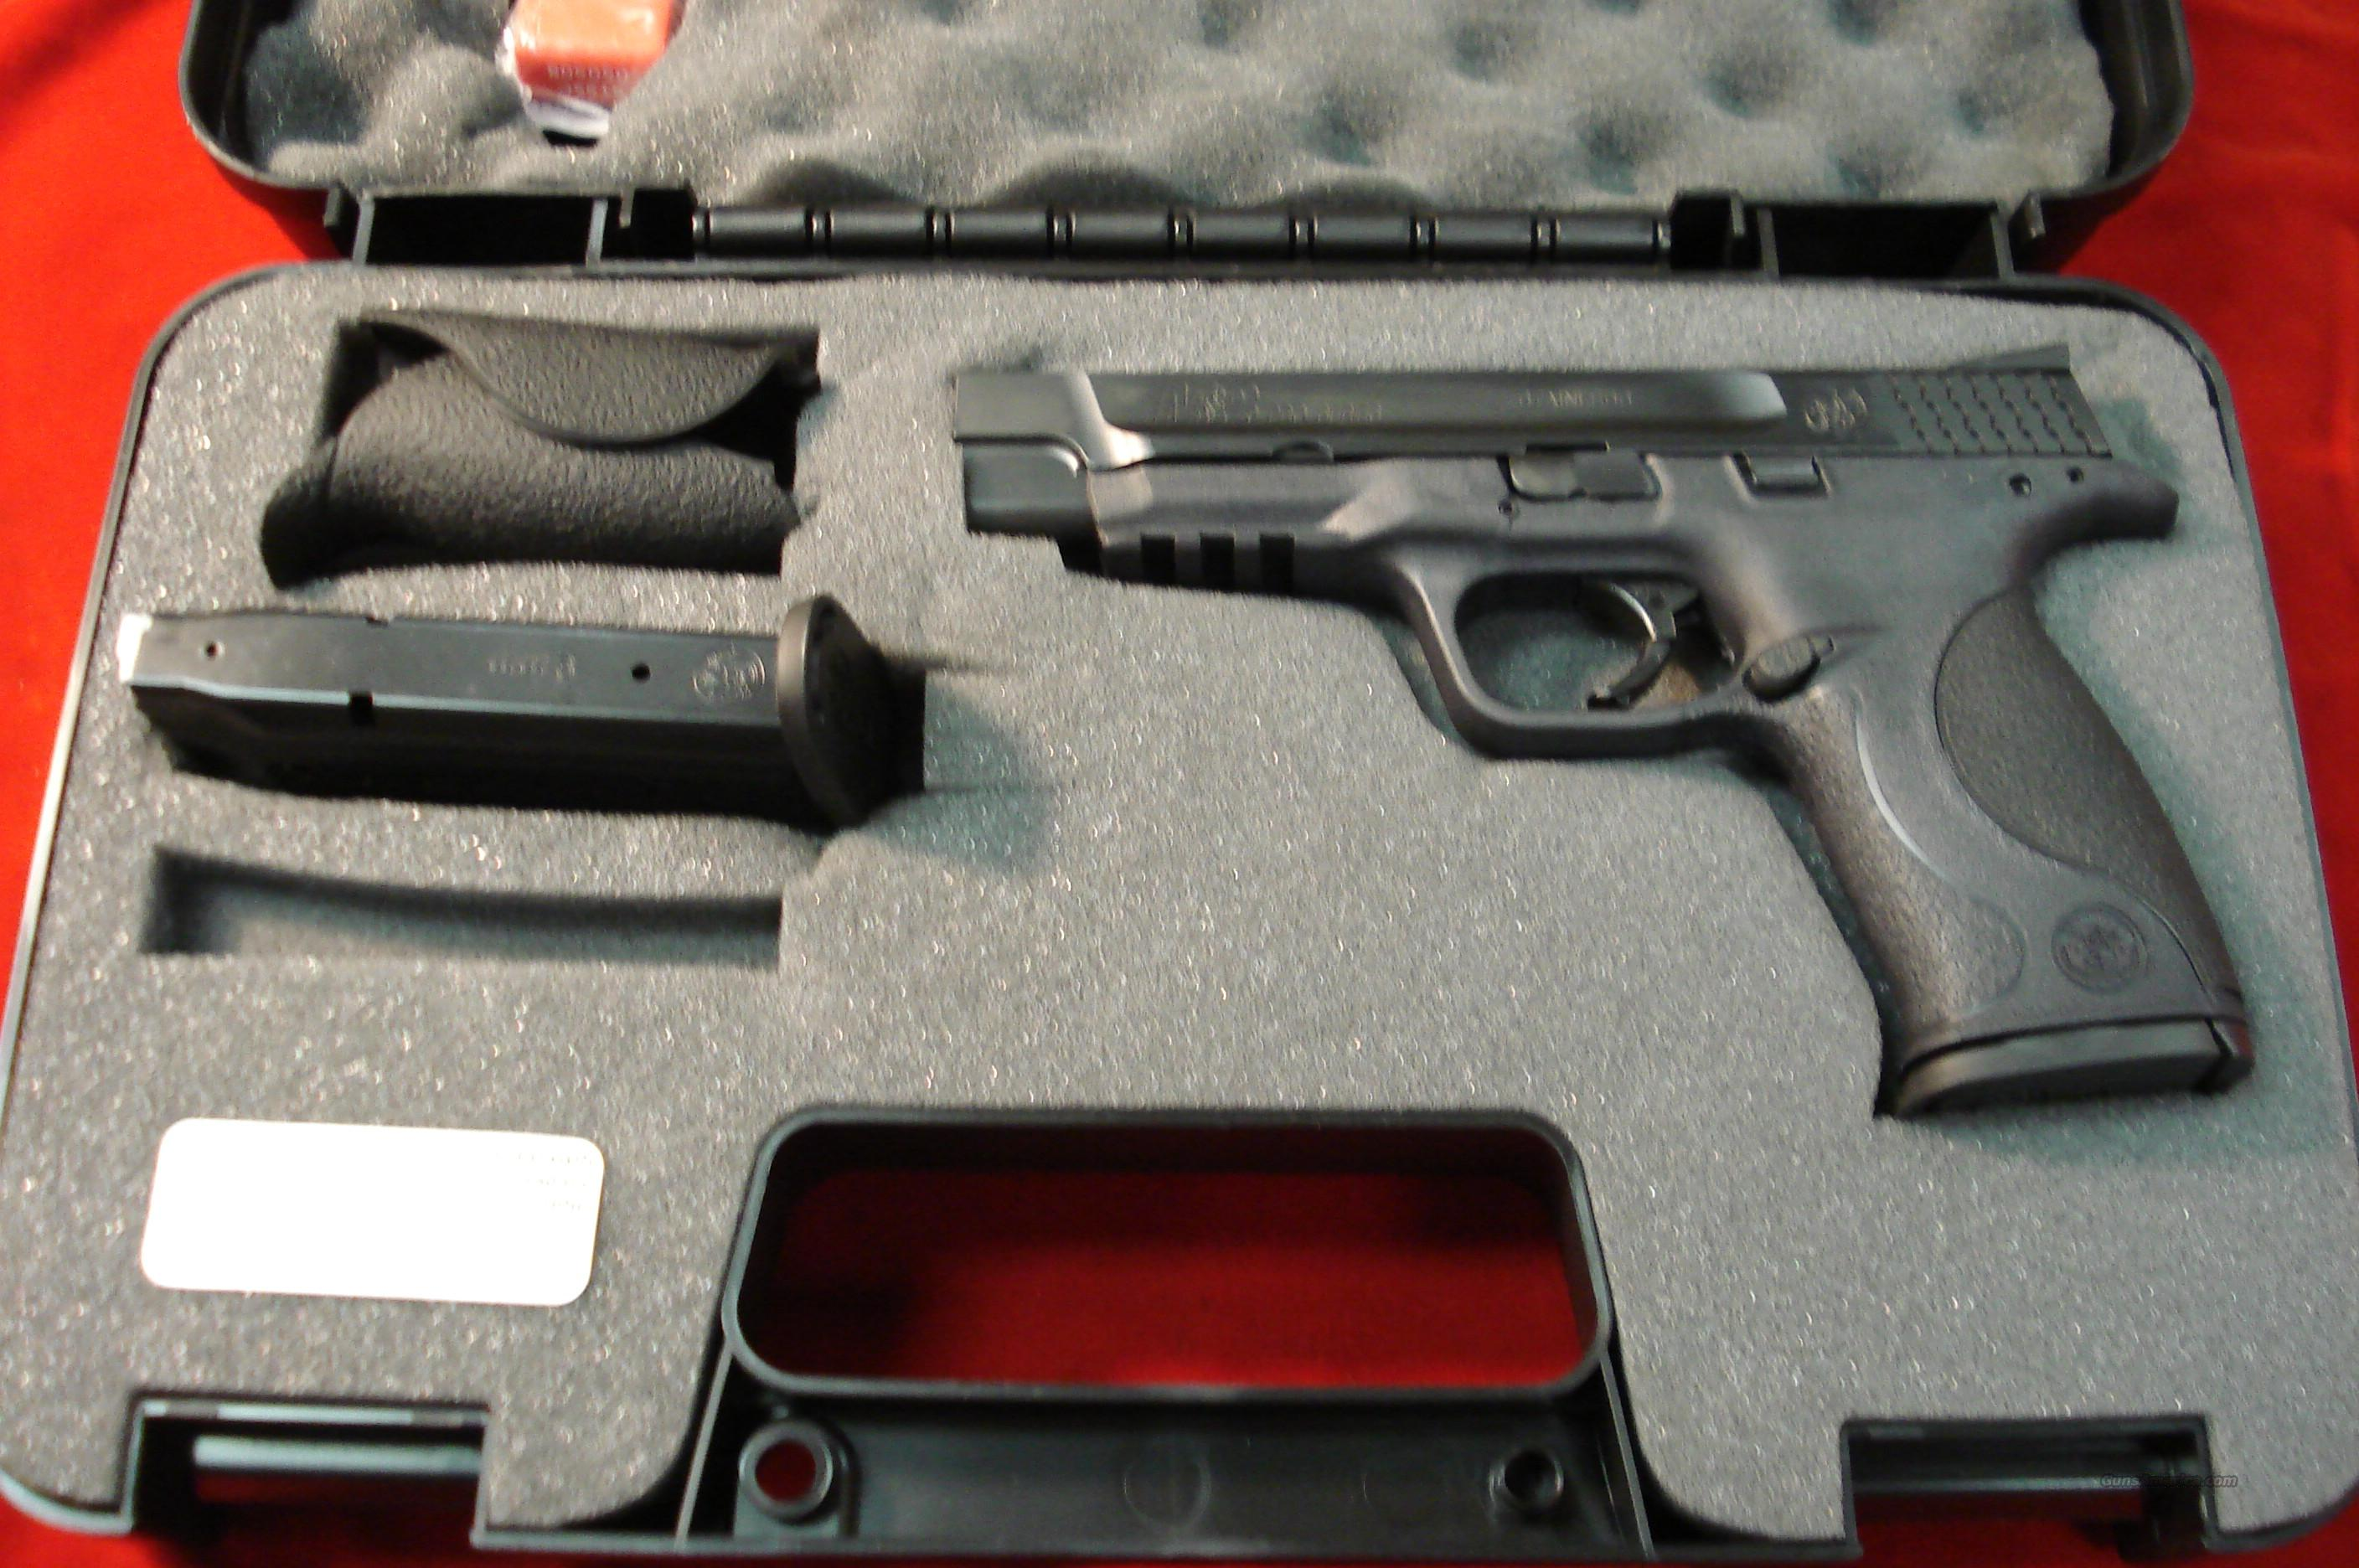 SMITH AND WESSON M&P PRO SERIES 9MM HIGH/CAP  {{ REBATE }}  Guns > Pistols > Smith & Wesson Pistols - Autos > Polymer Frame